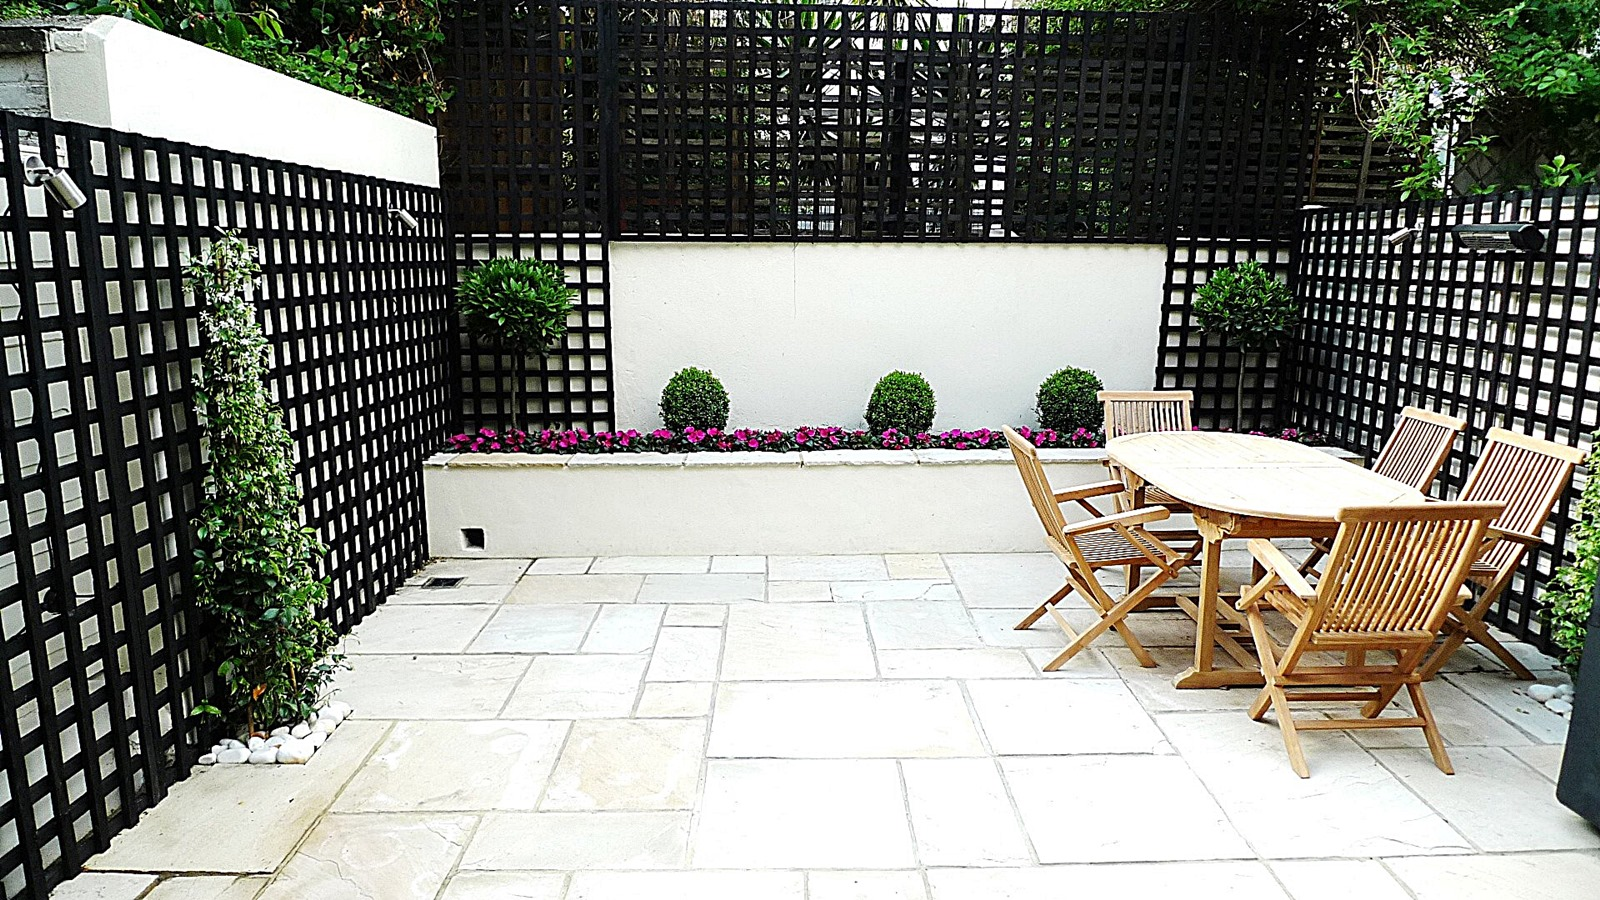 Sandstone paving patio raised beds classic modern planting ... on Black And White Patio Ideas id=85397